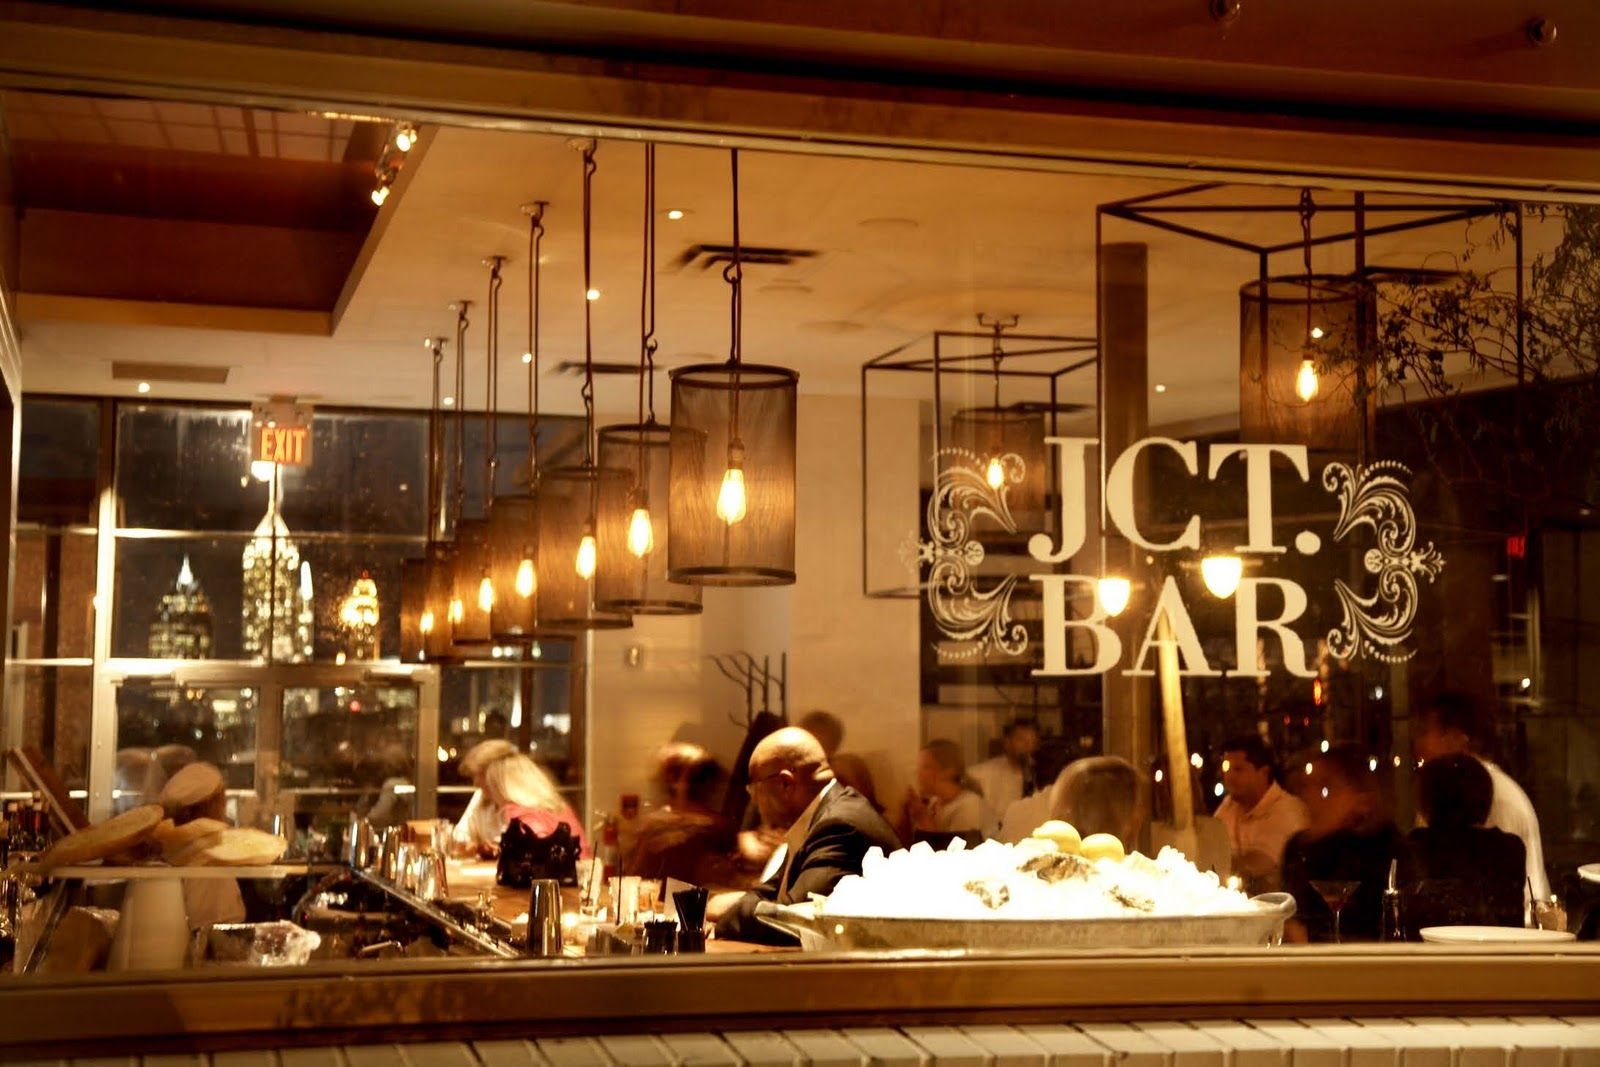 JCT.-BAR-21.jpg (1600×1067) | restaurant design | Pinterest